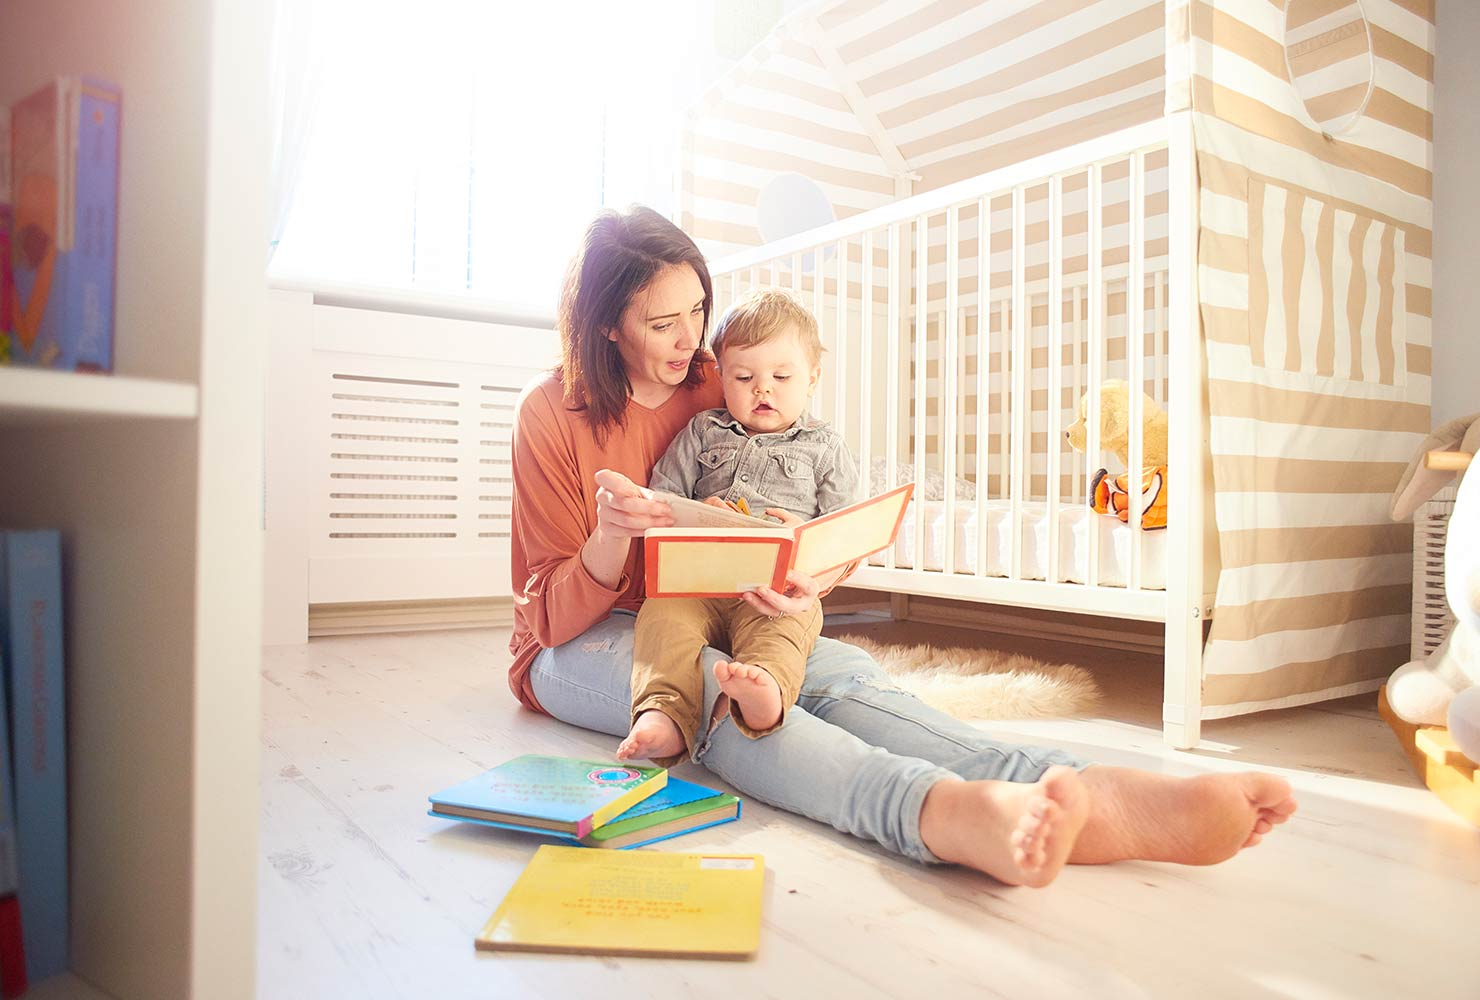 Mom and son sitting on floor by crib reading book.